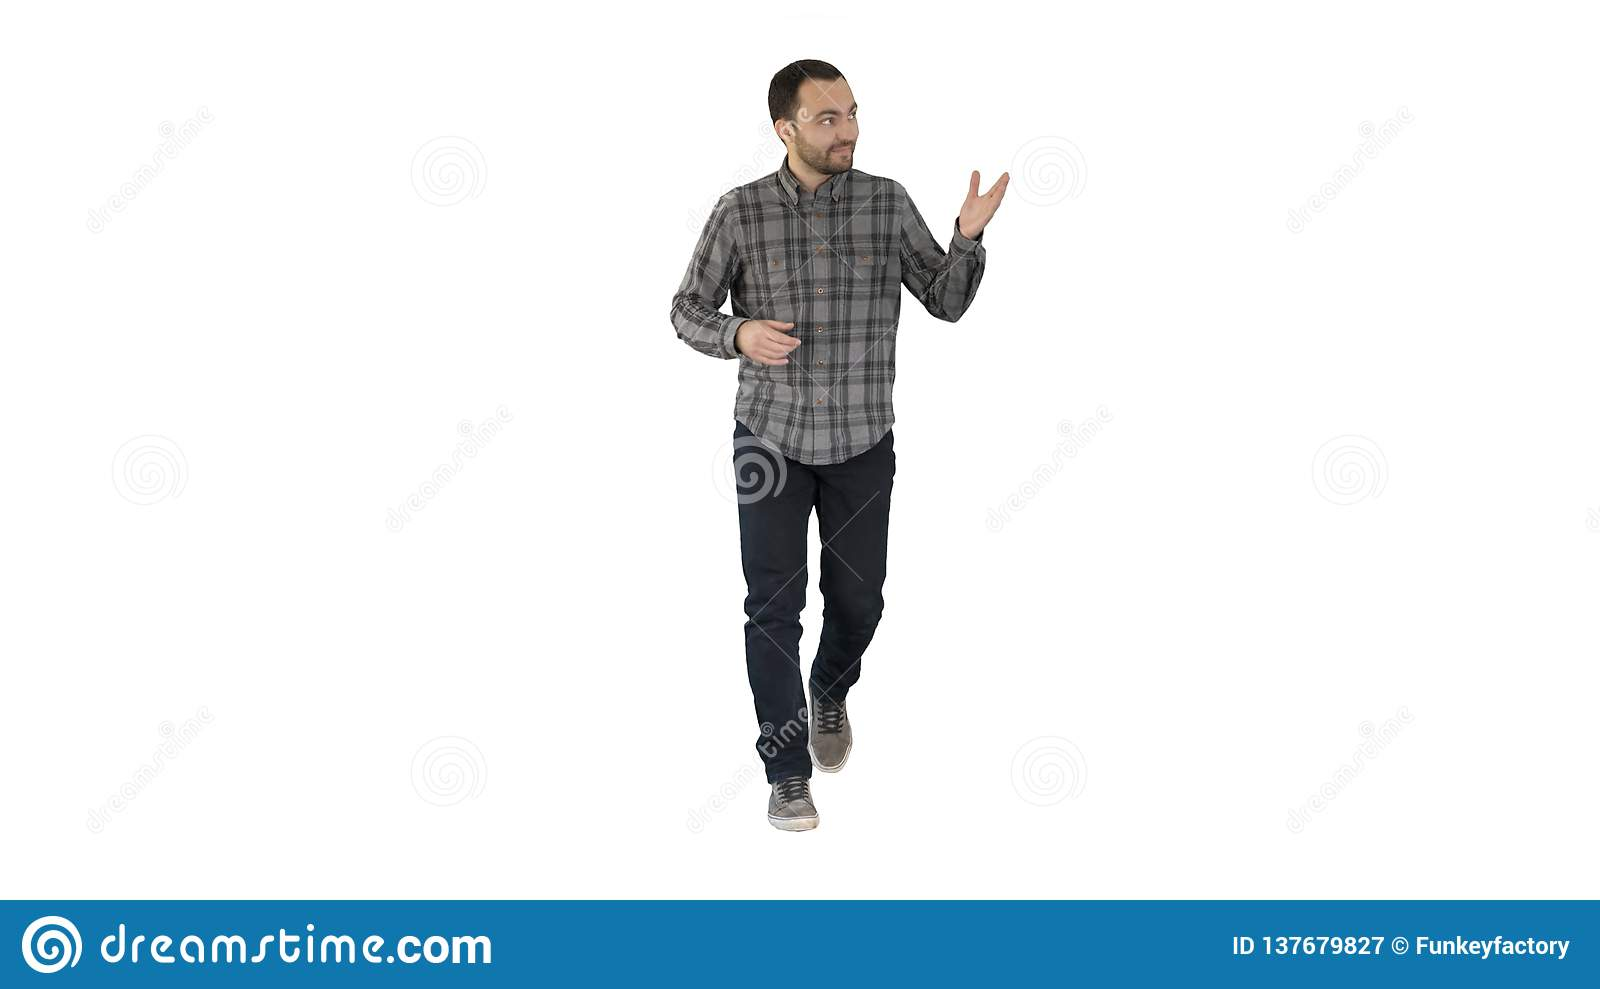 Young confident man in shirt and jeans walking towards camera and pointing to the sides on white background.